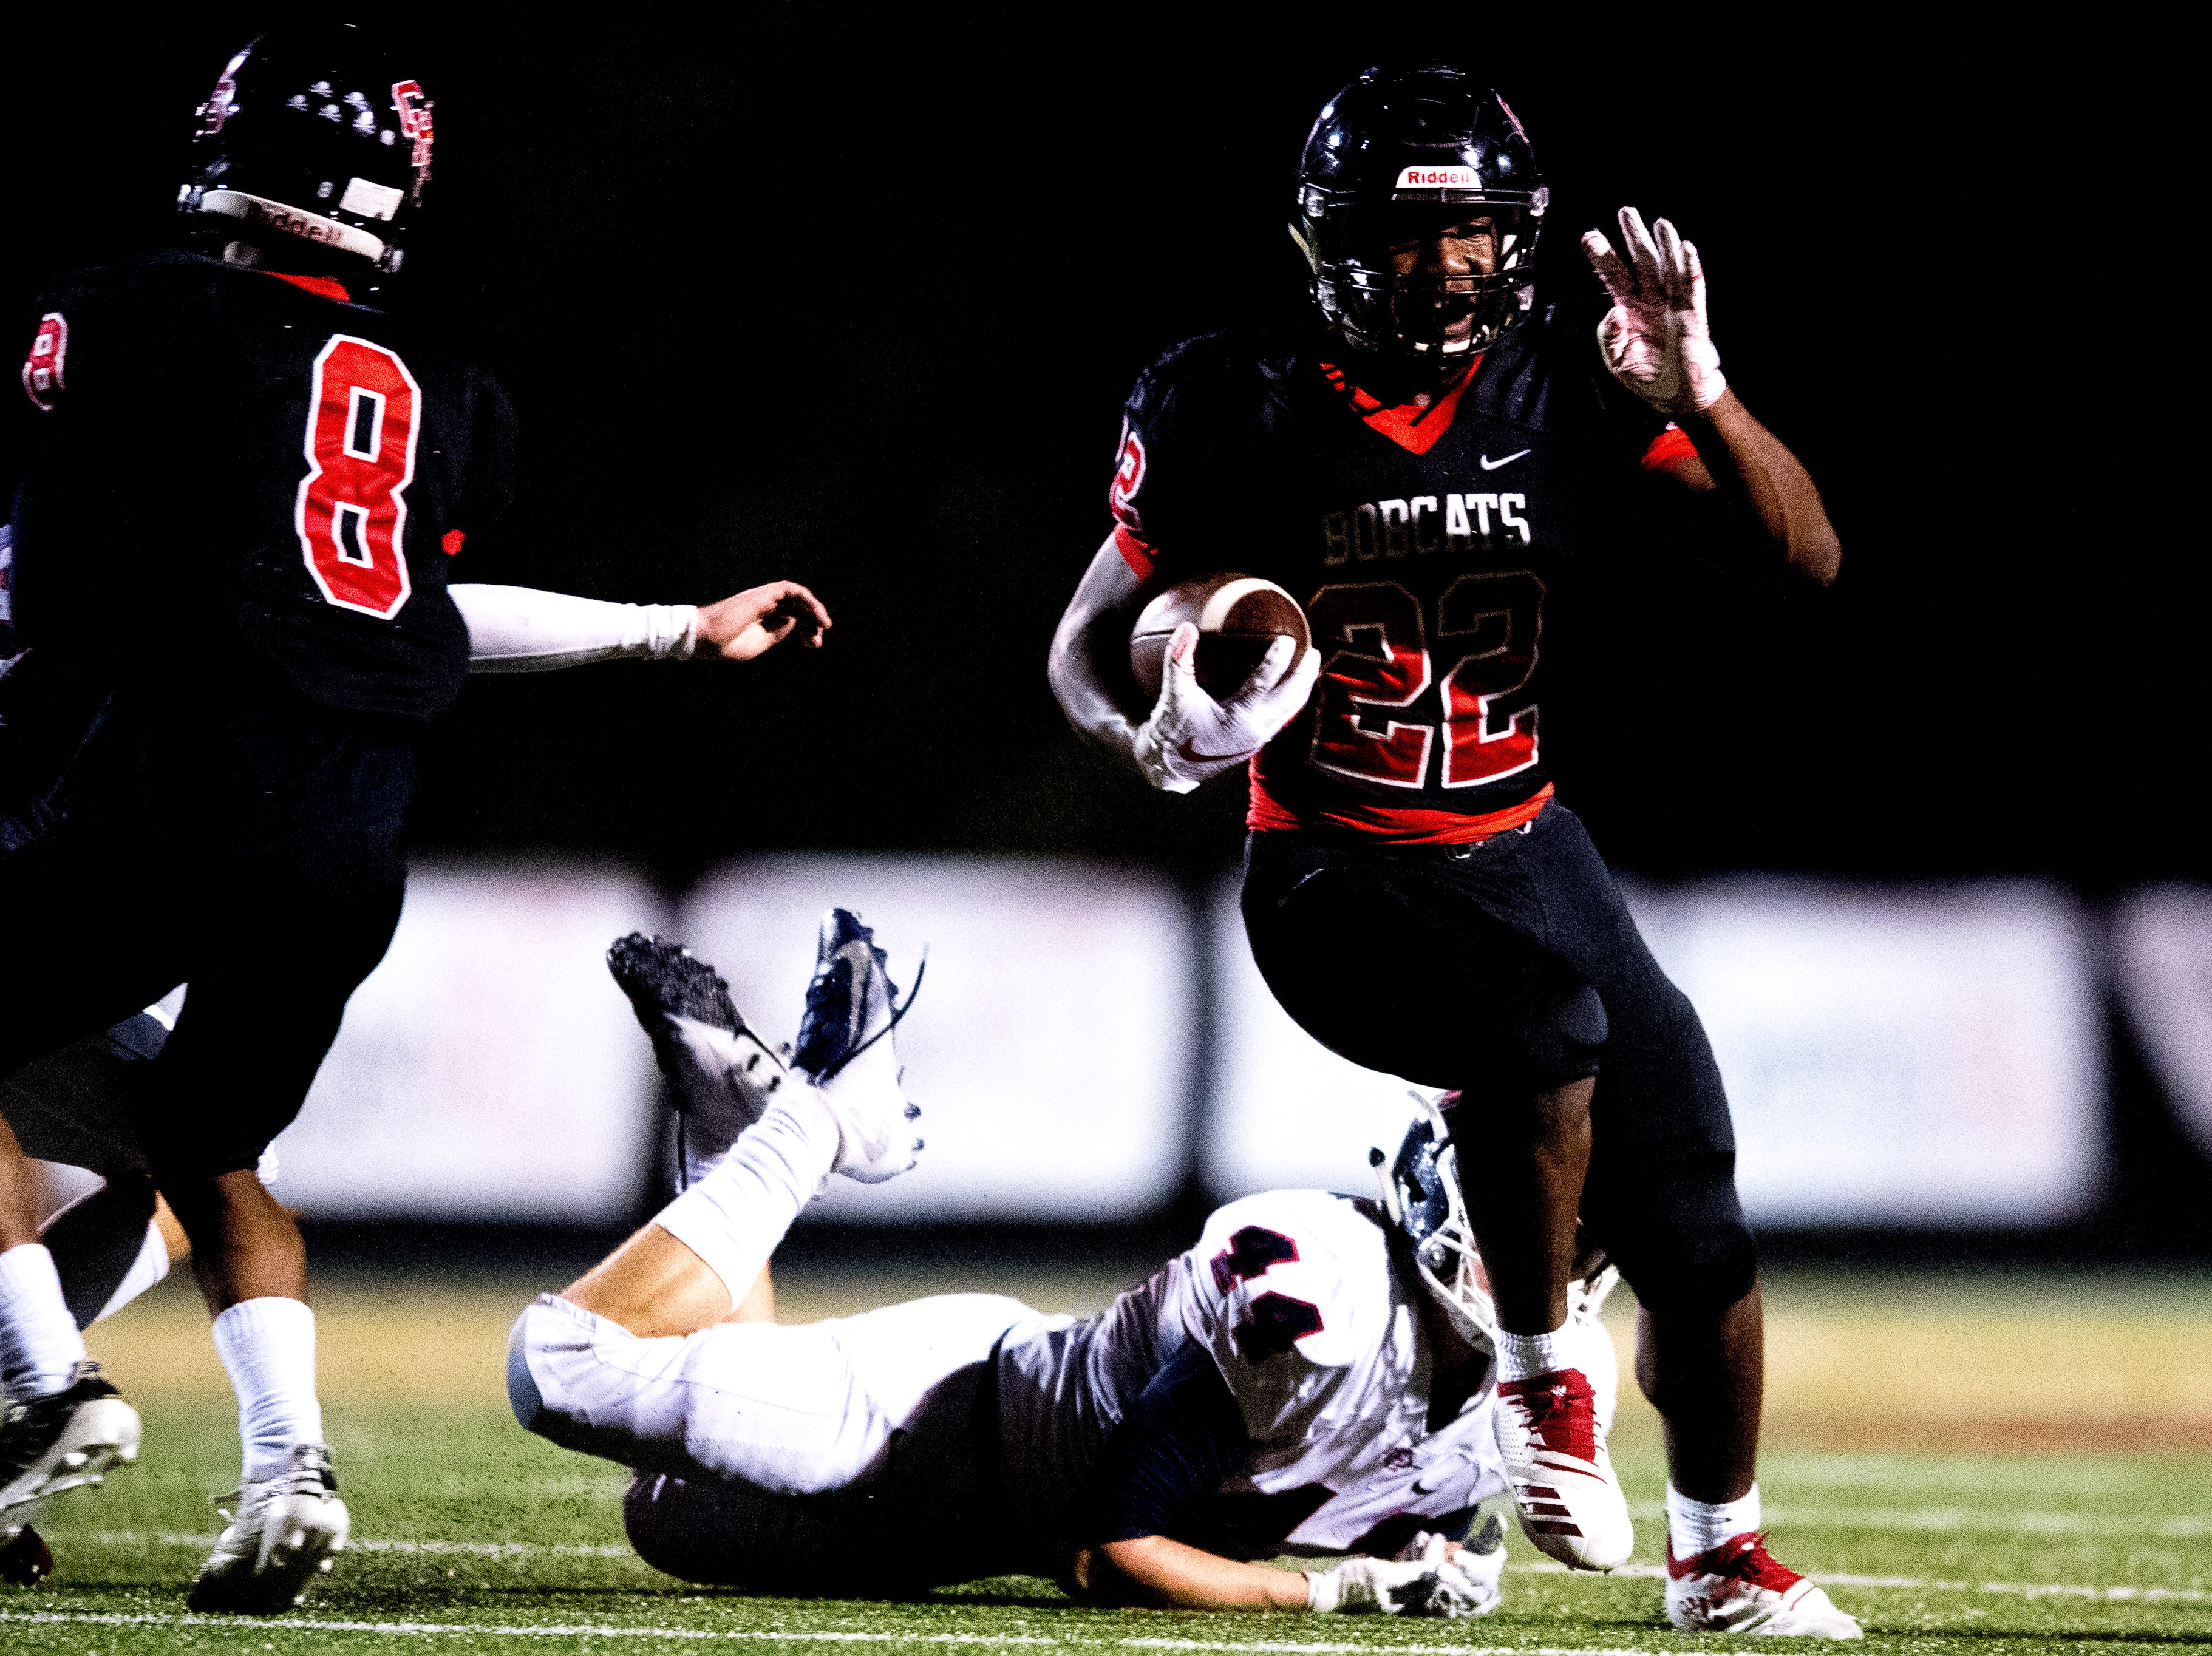 Central's Devone Moss (22) evades South-Doyle's Farrell Scott (44) during a football game between Central and South-Doyle at Central High School in Knoxville, Tennessee on Friday, October 19, 2018.